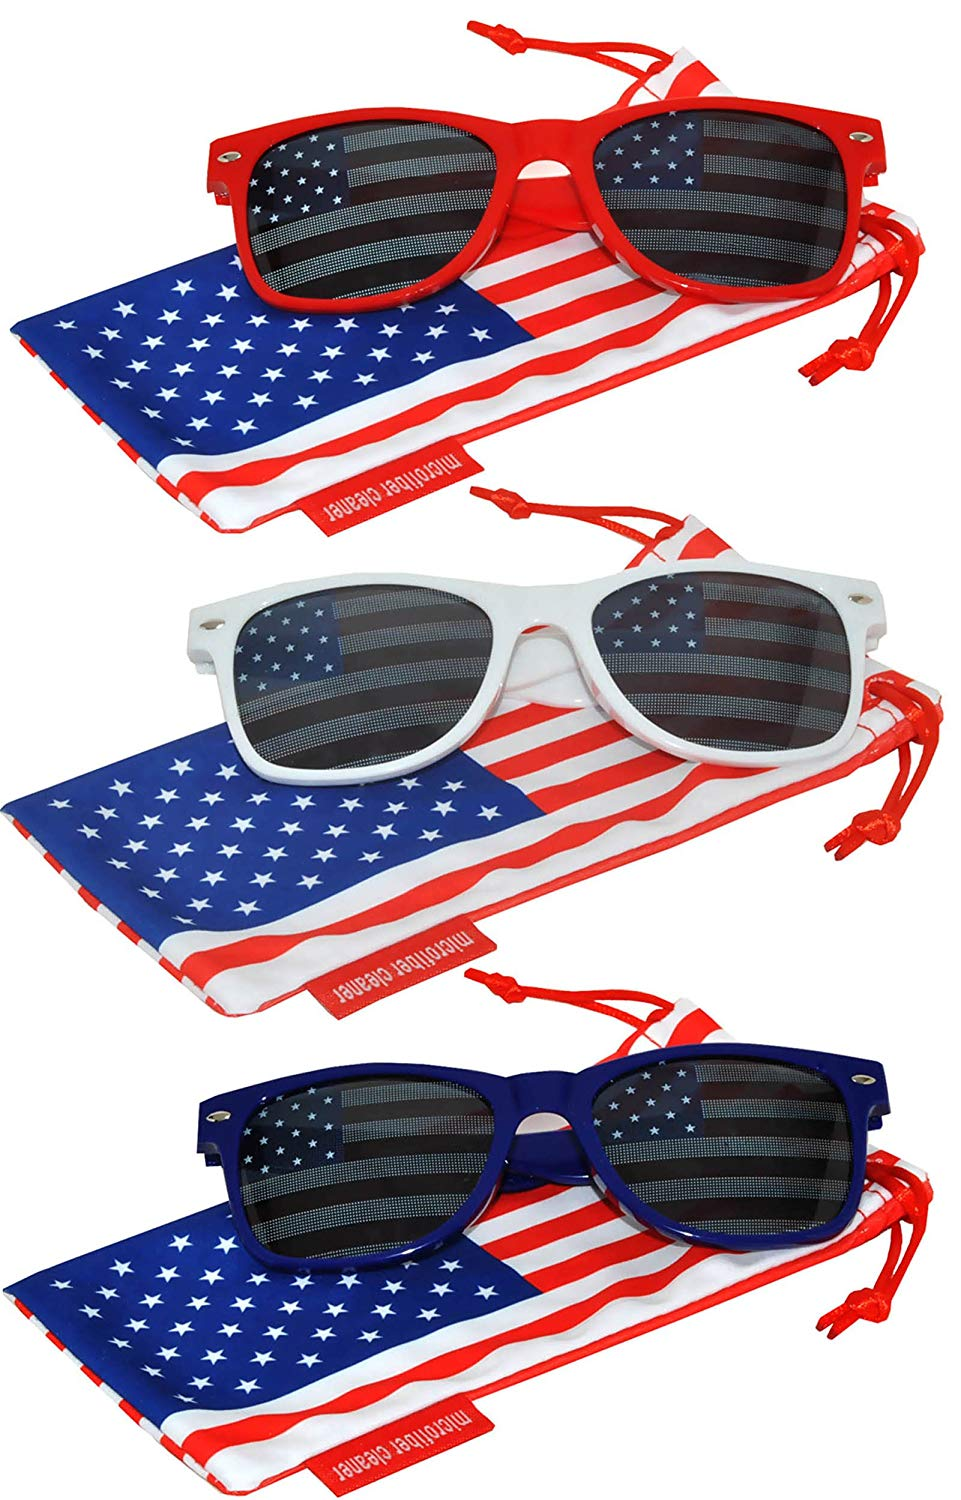 d99c65e8d6 Get Quotations · Set of 3 Pairs Classic American Patriot Flag Sunglasses  USA Colored Mirror Smoke Lens